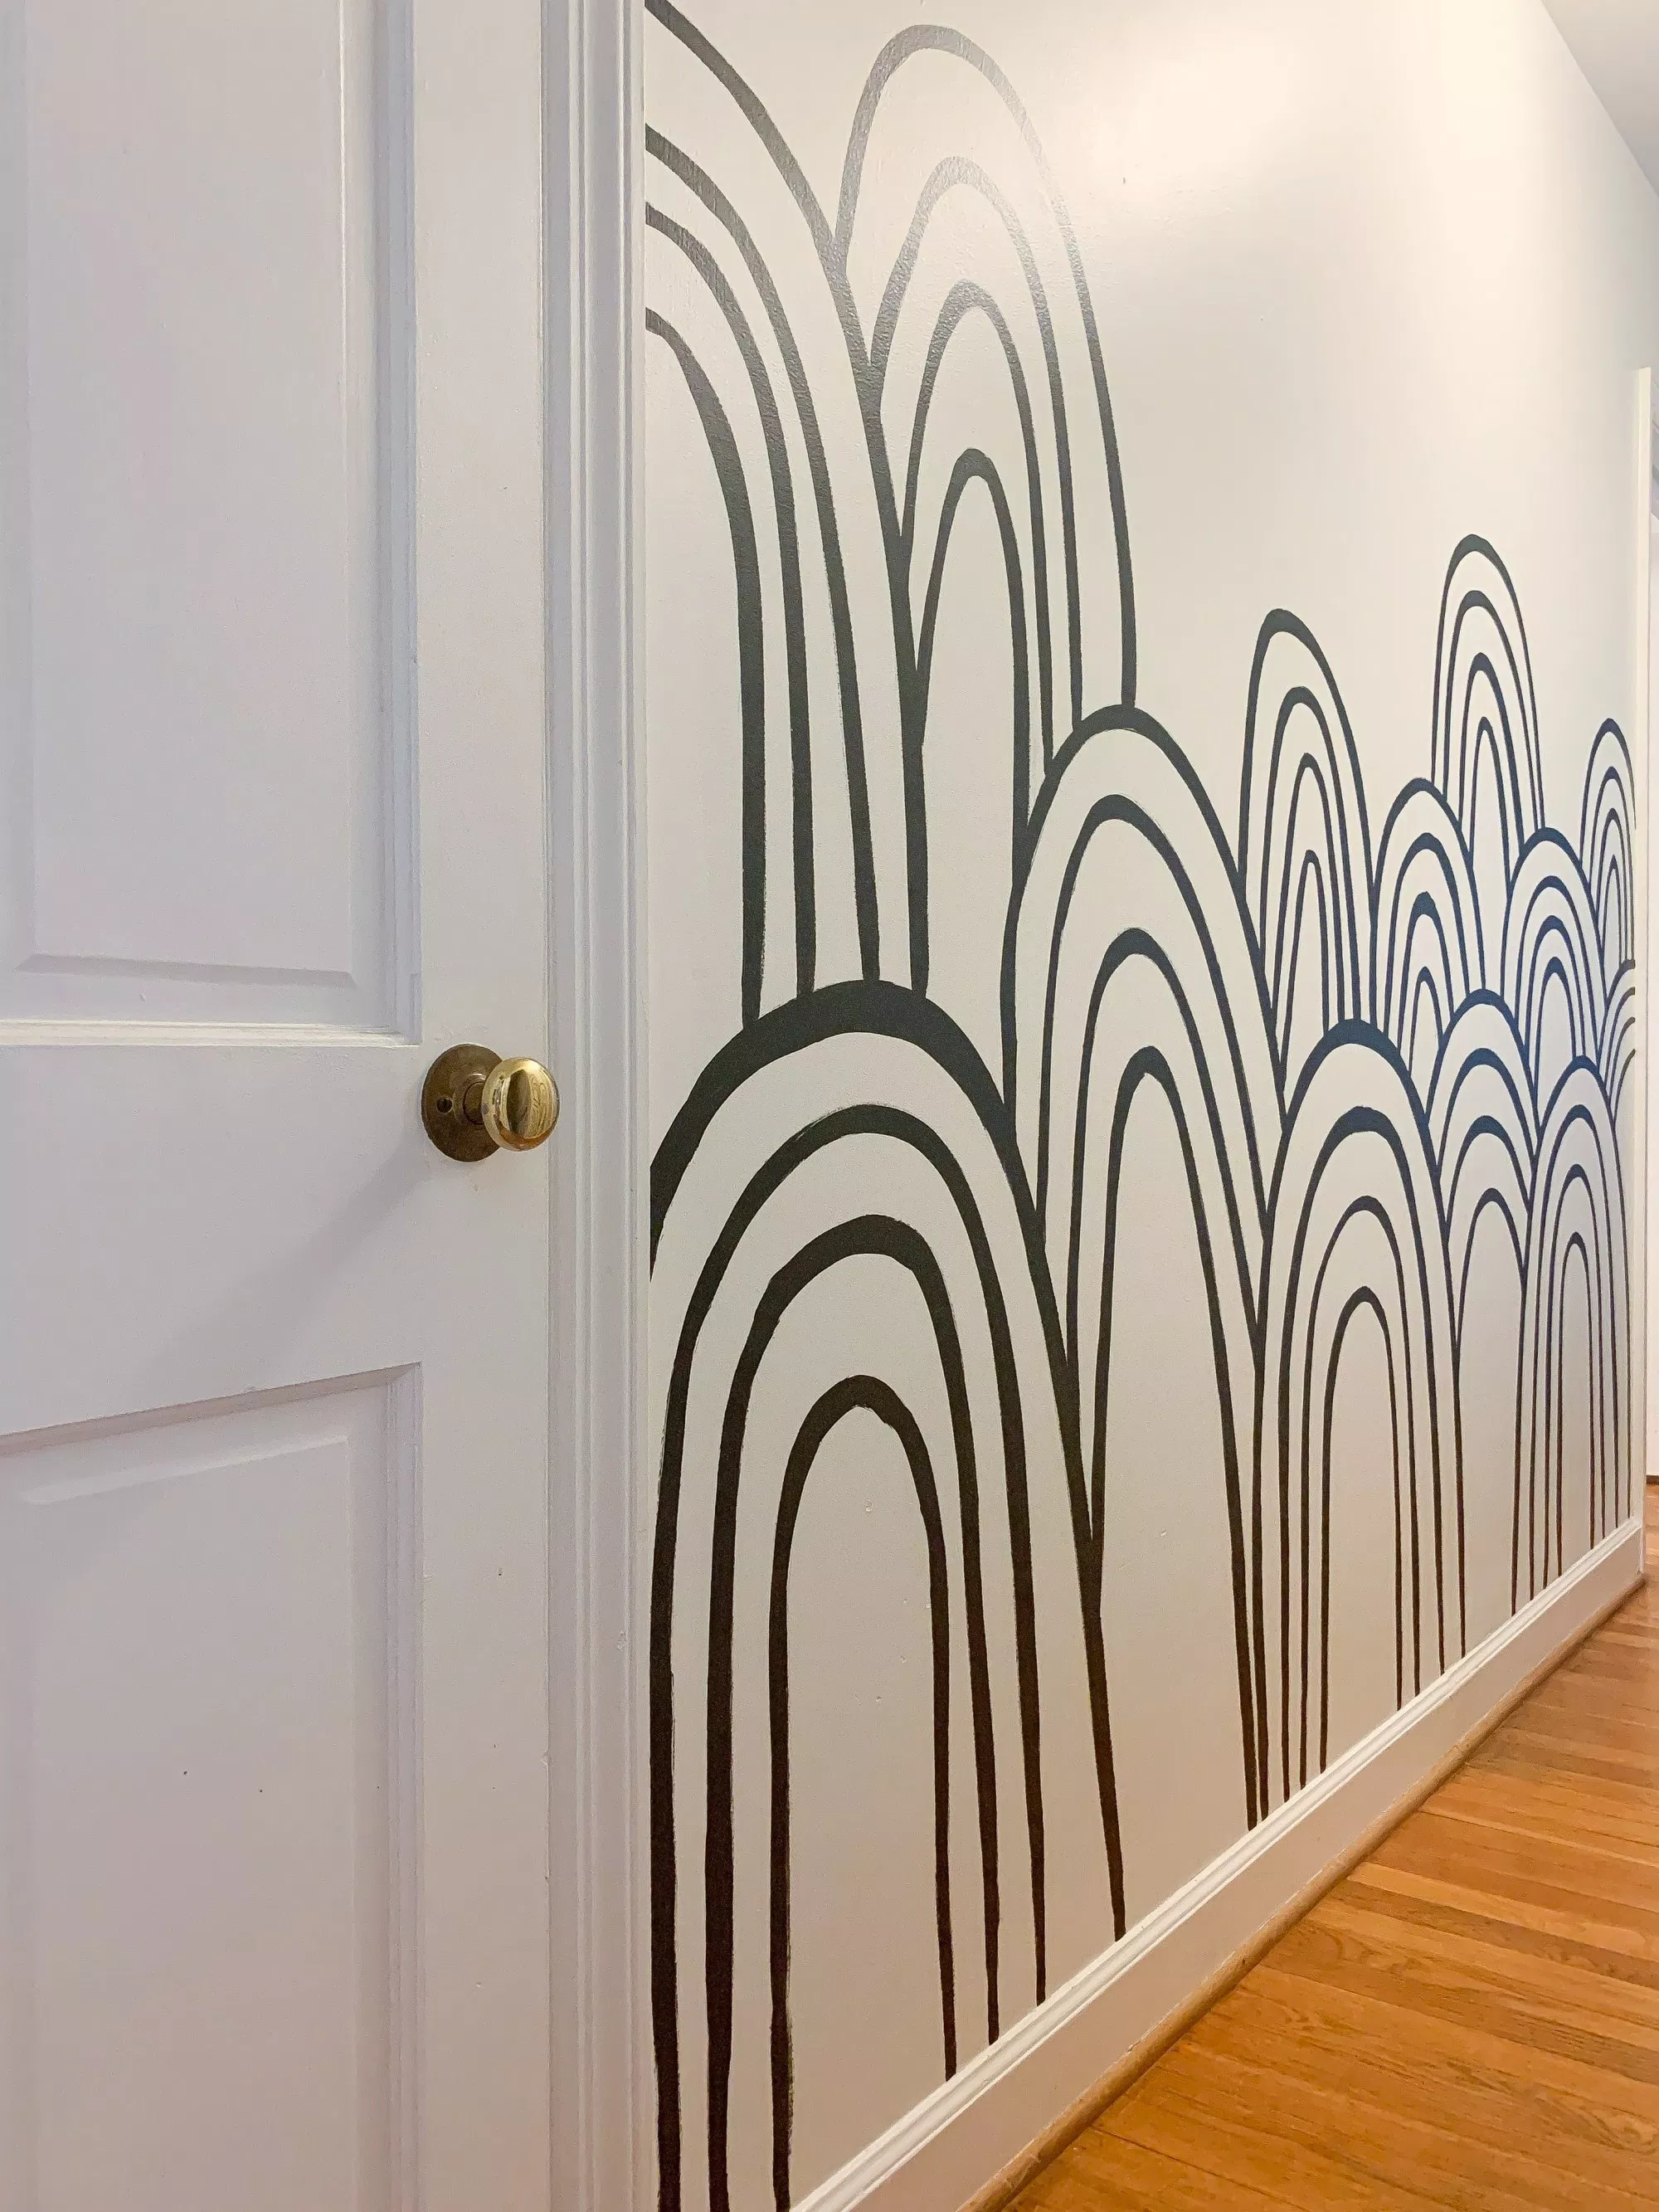 Diy Hand Painted Black And White Rainbow Hills Mural Accent Wall